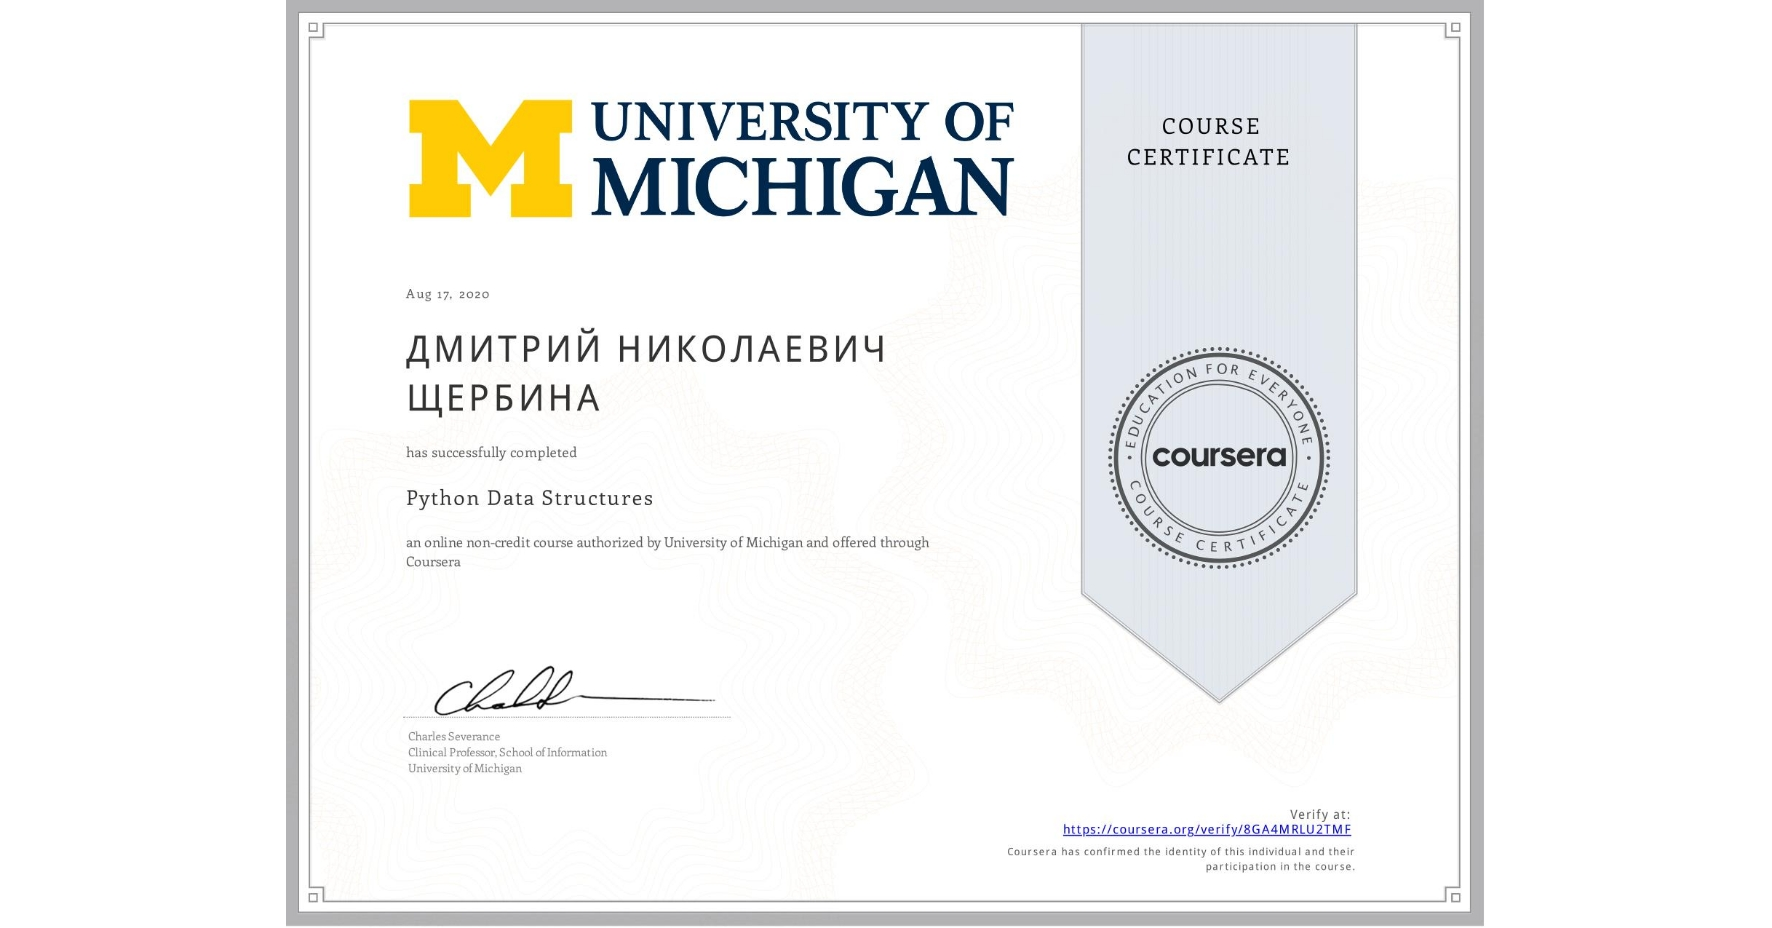 View certificate for ДМИТРИЙ НИКОЛАЕВИЧ ЩЕРБИНА, Python Data Structures, an online non-credit course authorized by University of Michigan and offered through Coursera